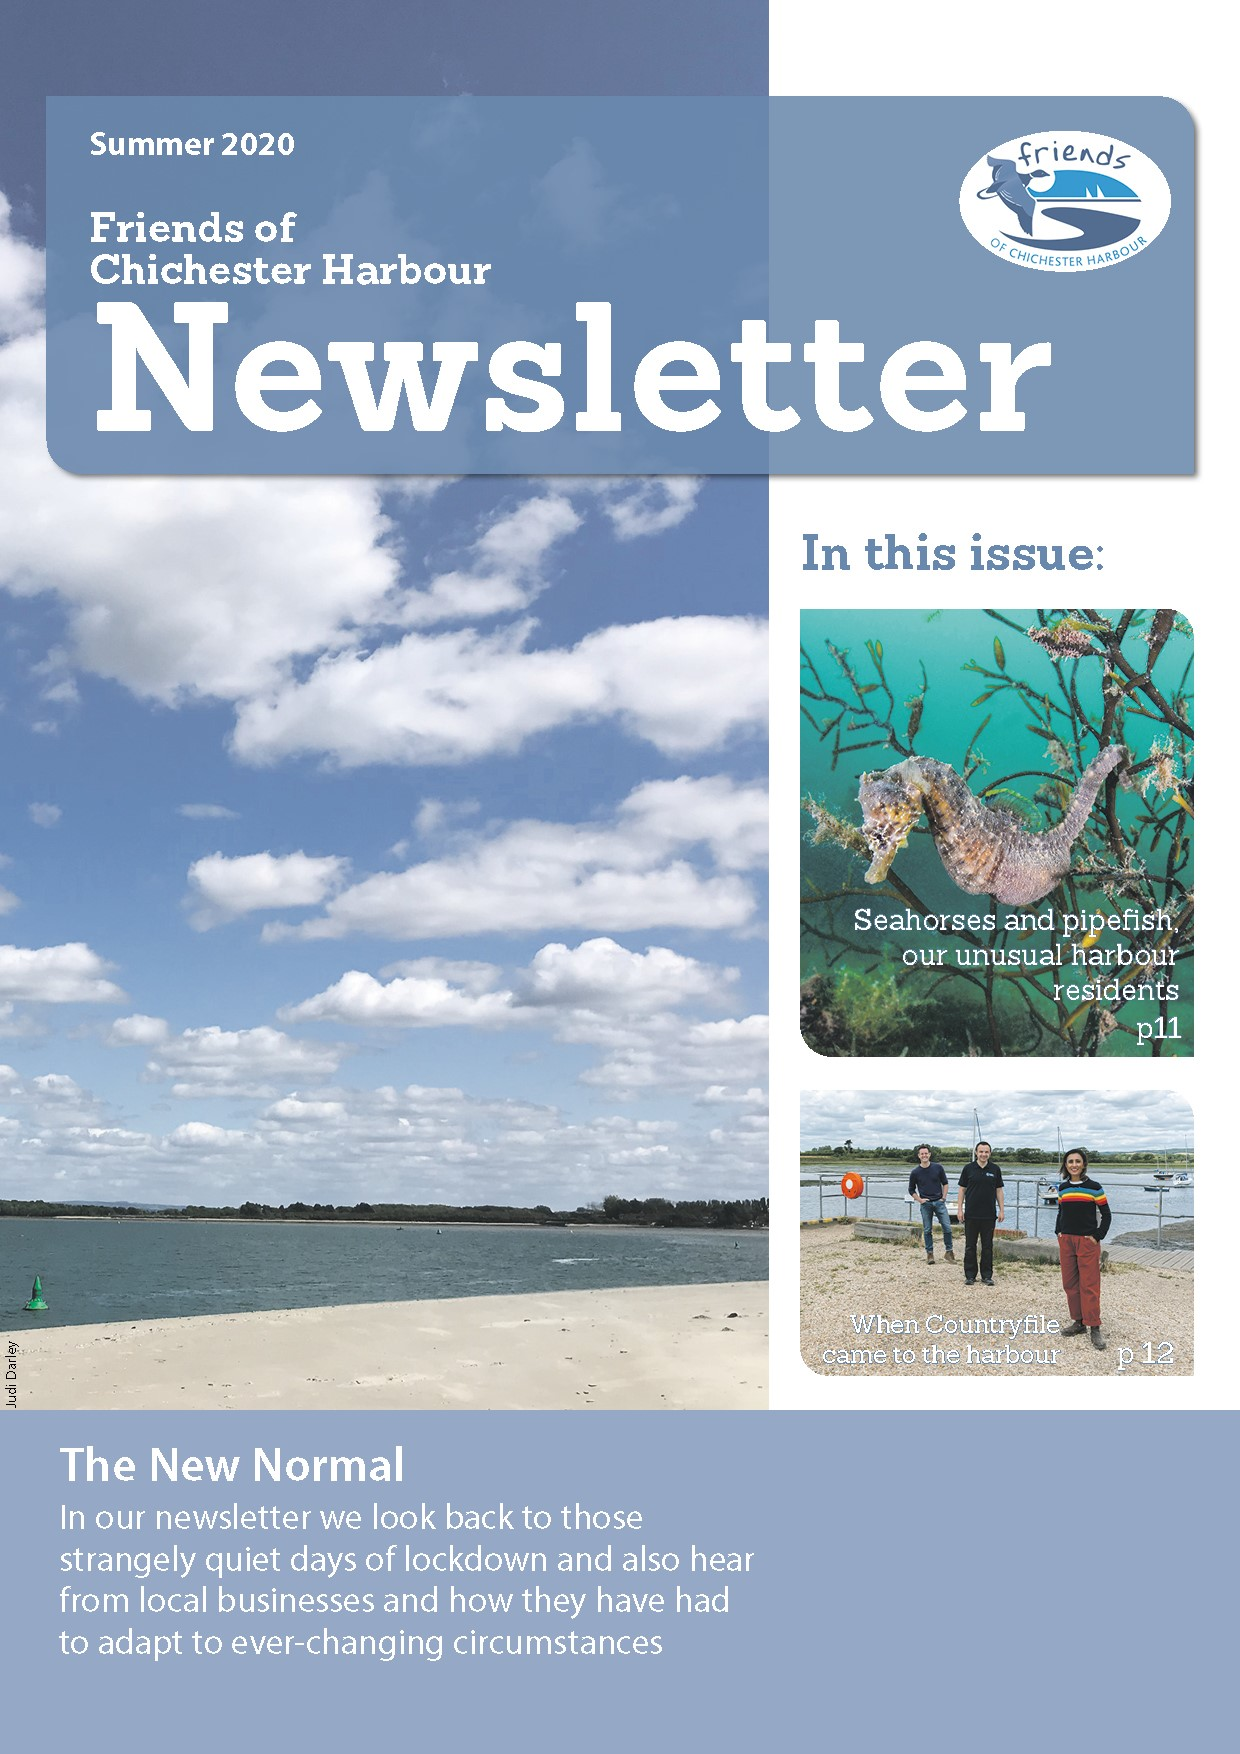 Summer Newsletter 2020, Friends of Chichester Harbour